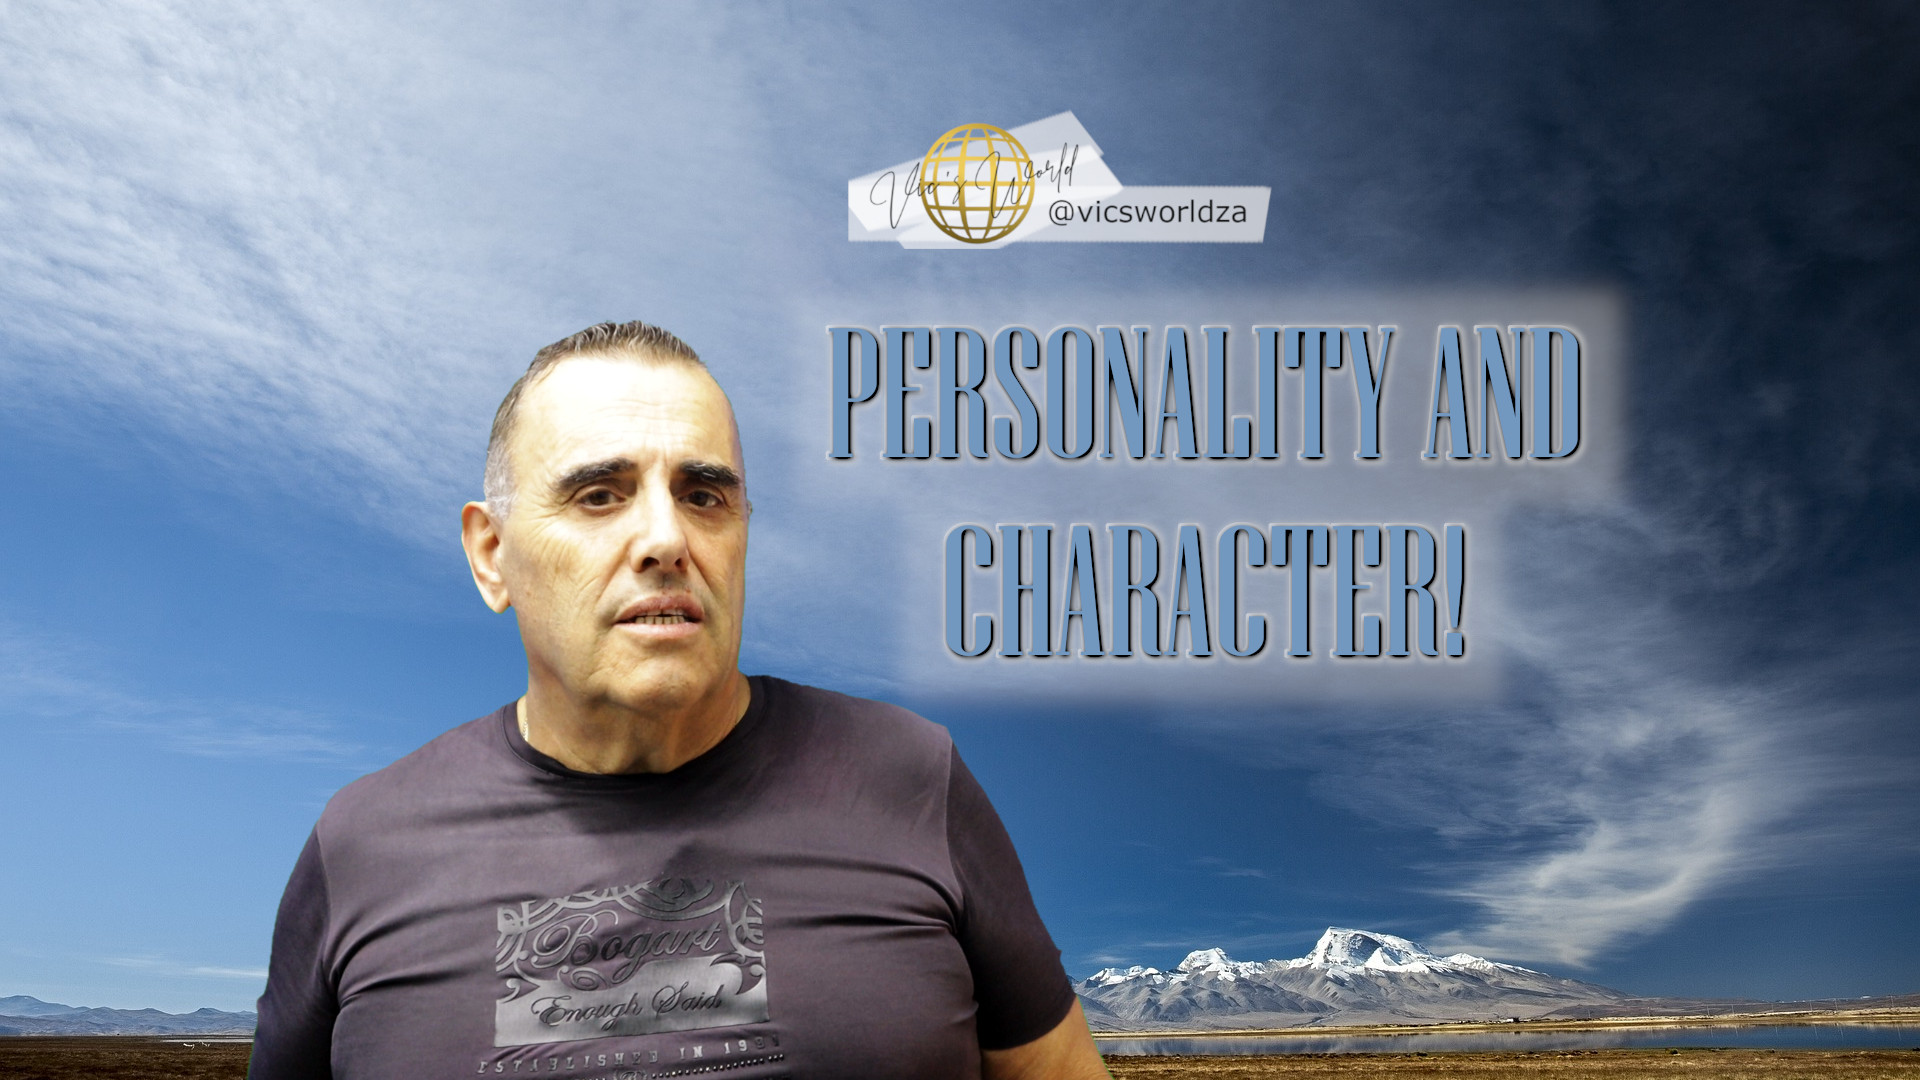 Personality and character!